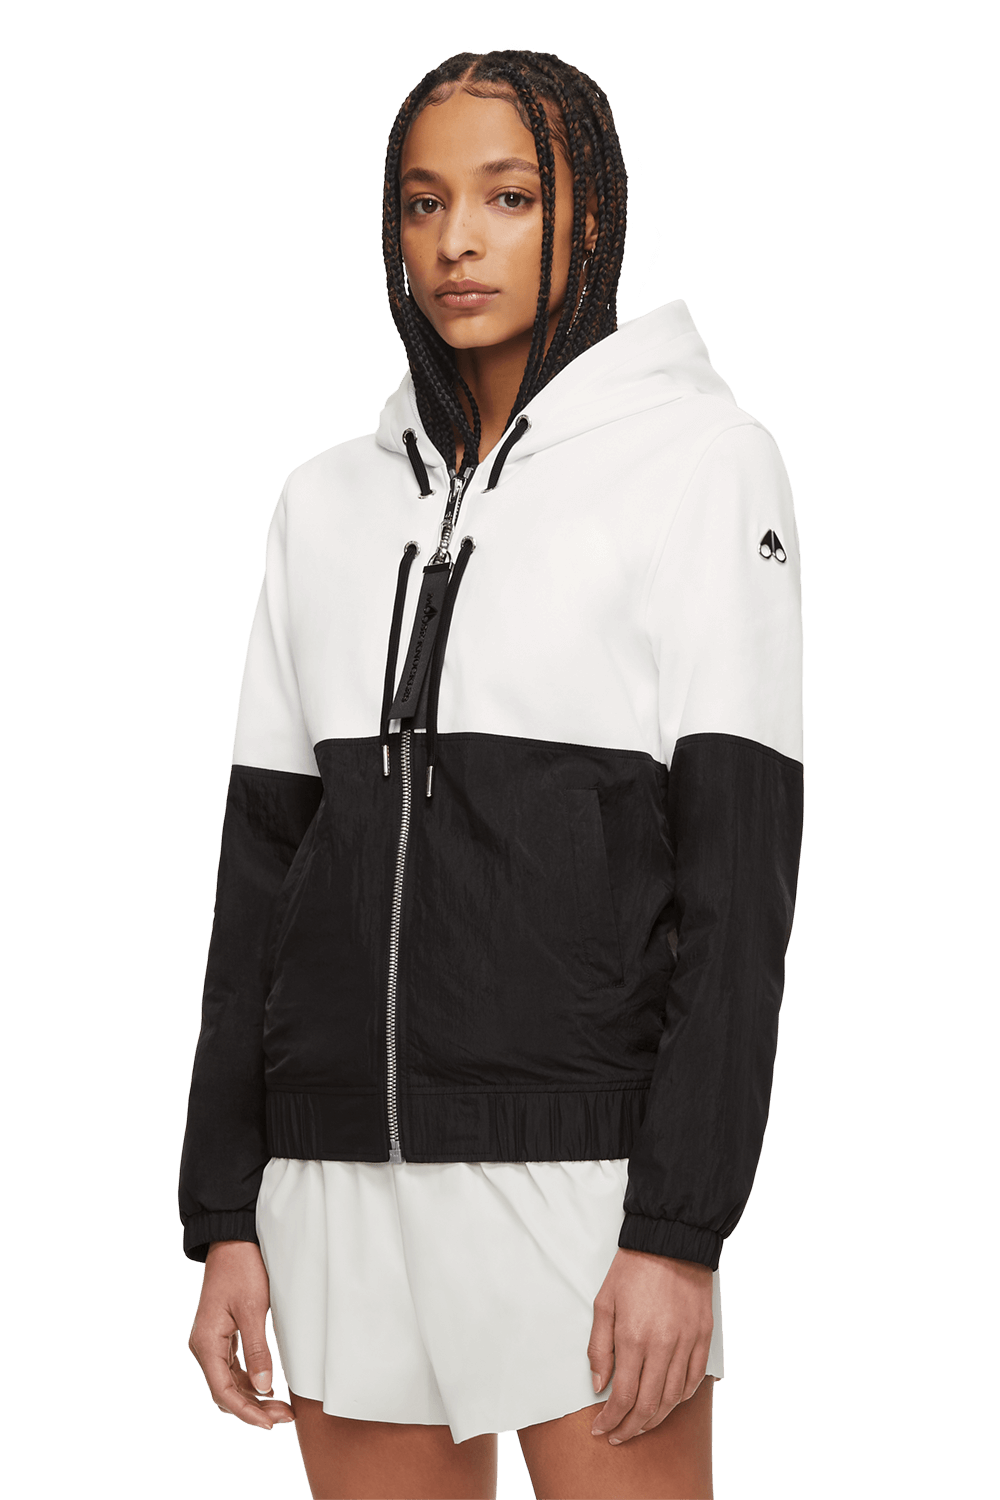 Travoltas Zip Up M11LS619 Black / White Front